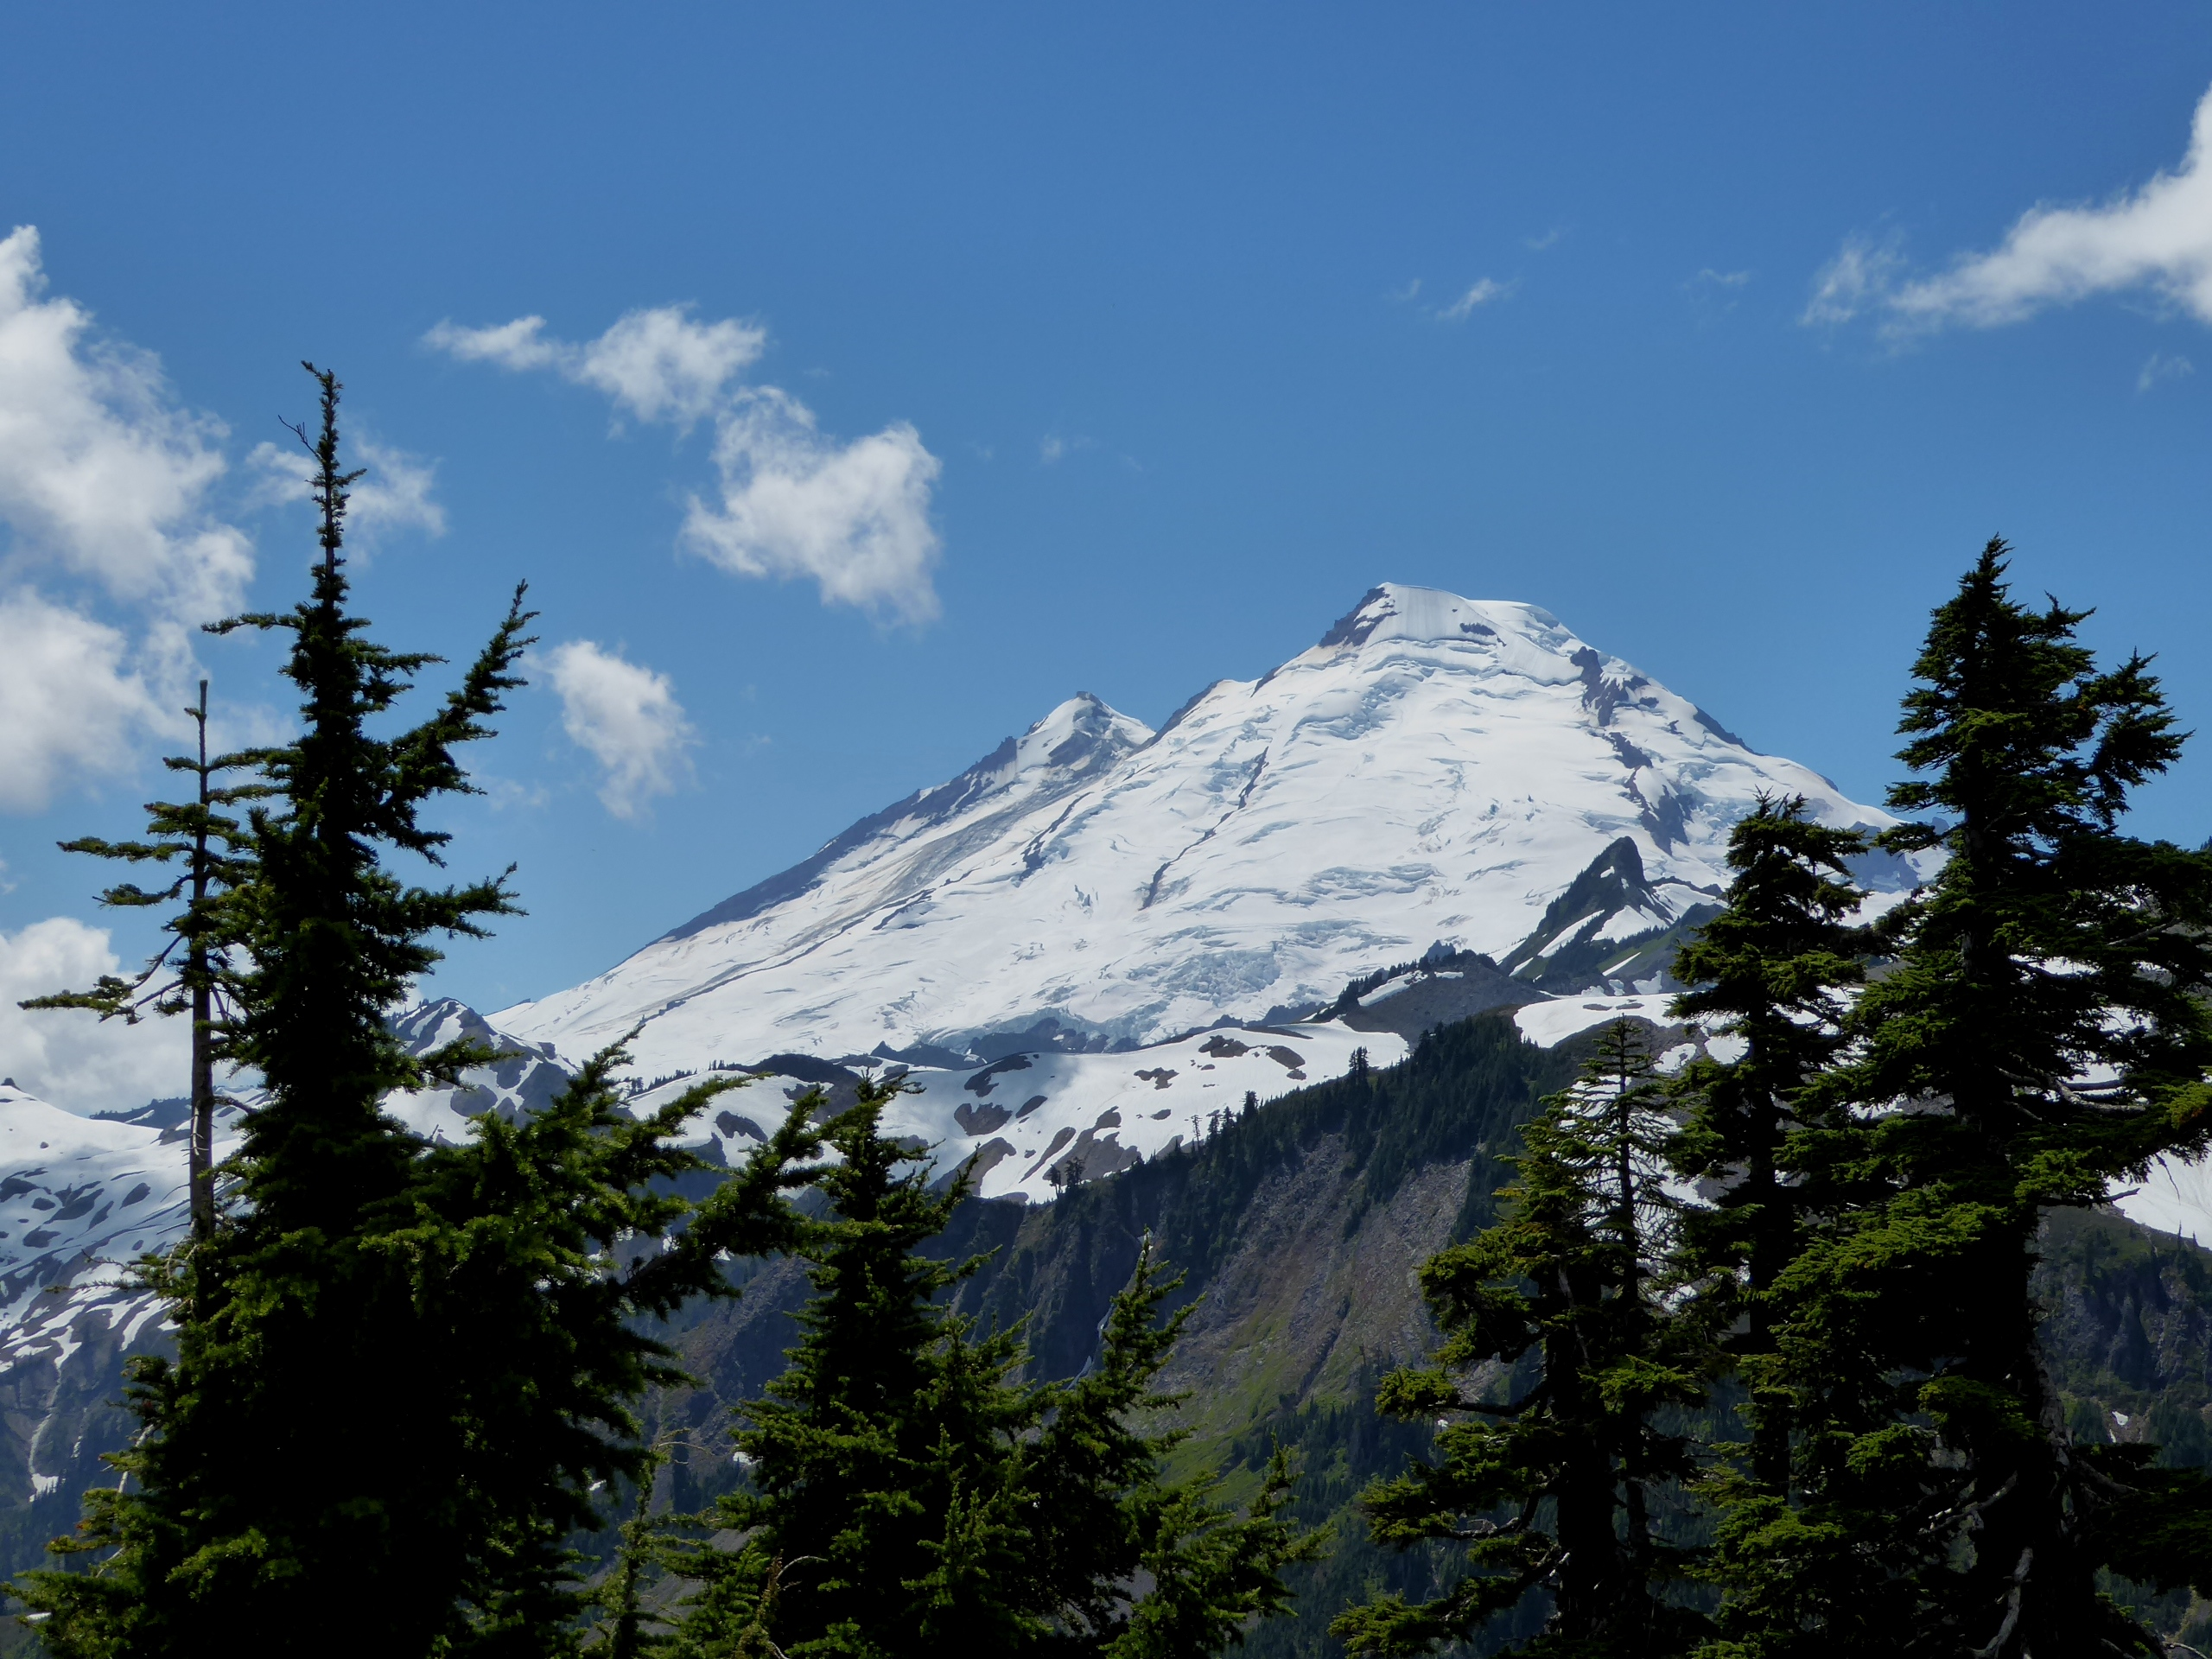 mount baker day tour - mount baker